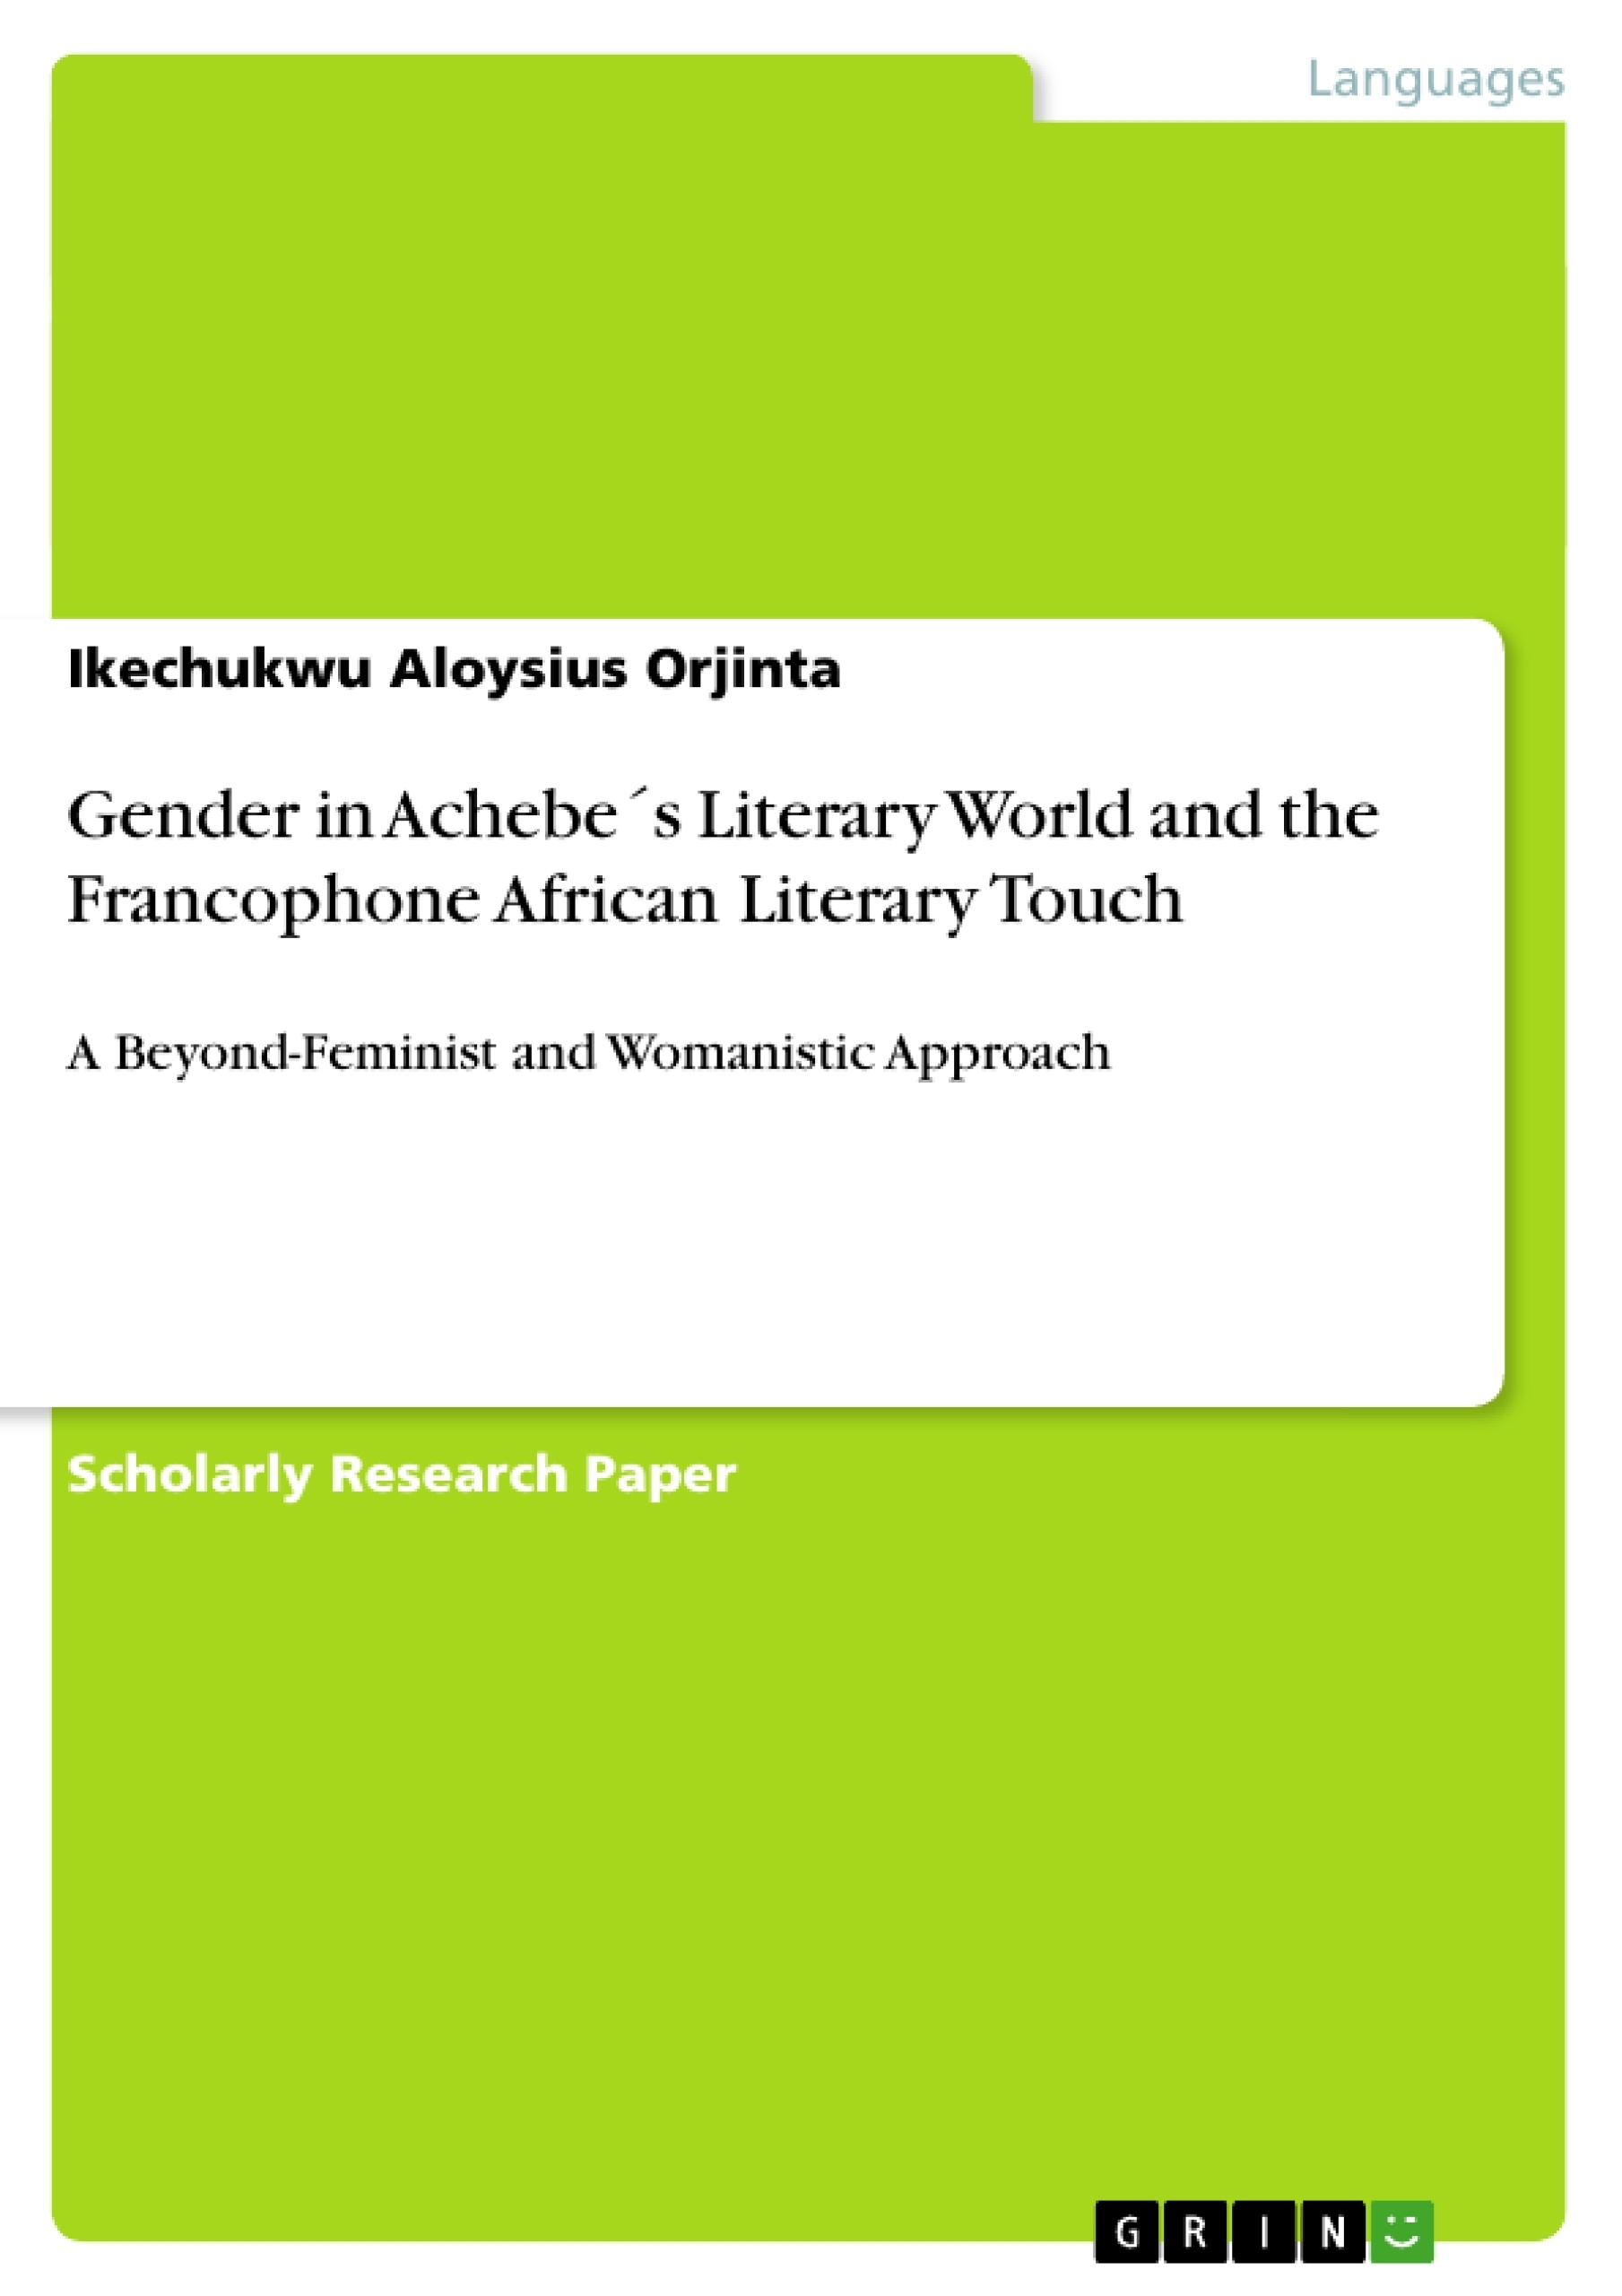 things fall apart essay okonkwo things fall apart penguin modern  gender in achebe acute s literary world and the francophone african gender in achebeacutes literary world